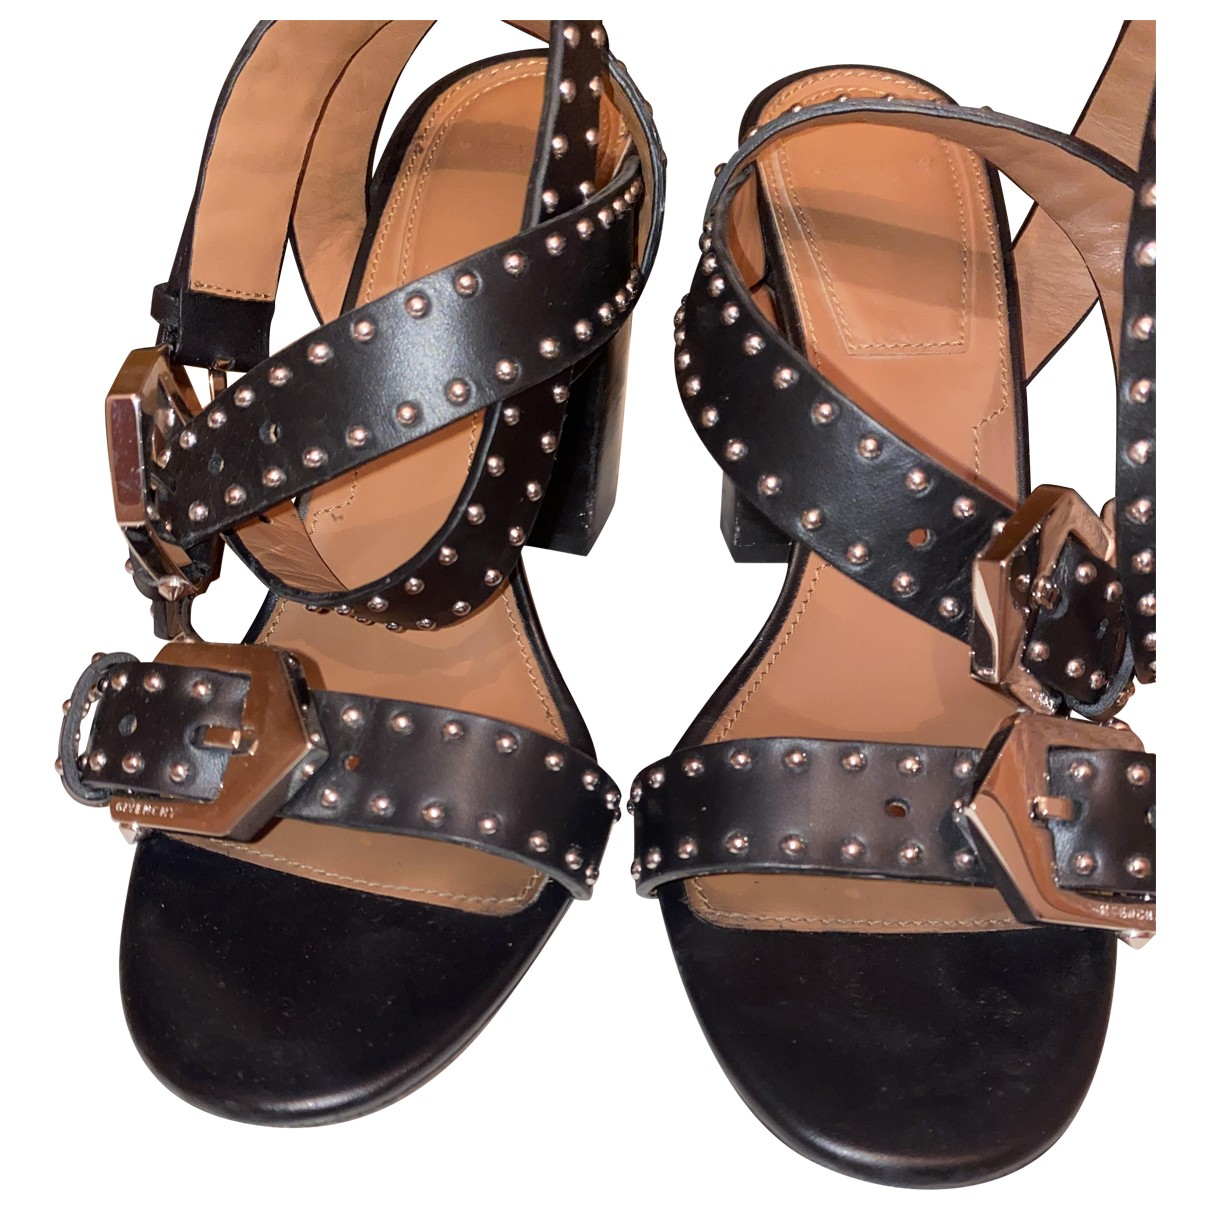 Givenchy \N Black Leather Sandals for Women 38 EU